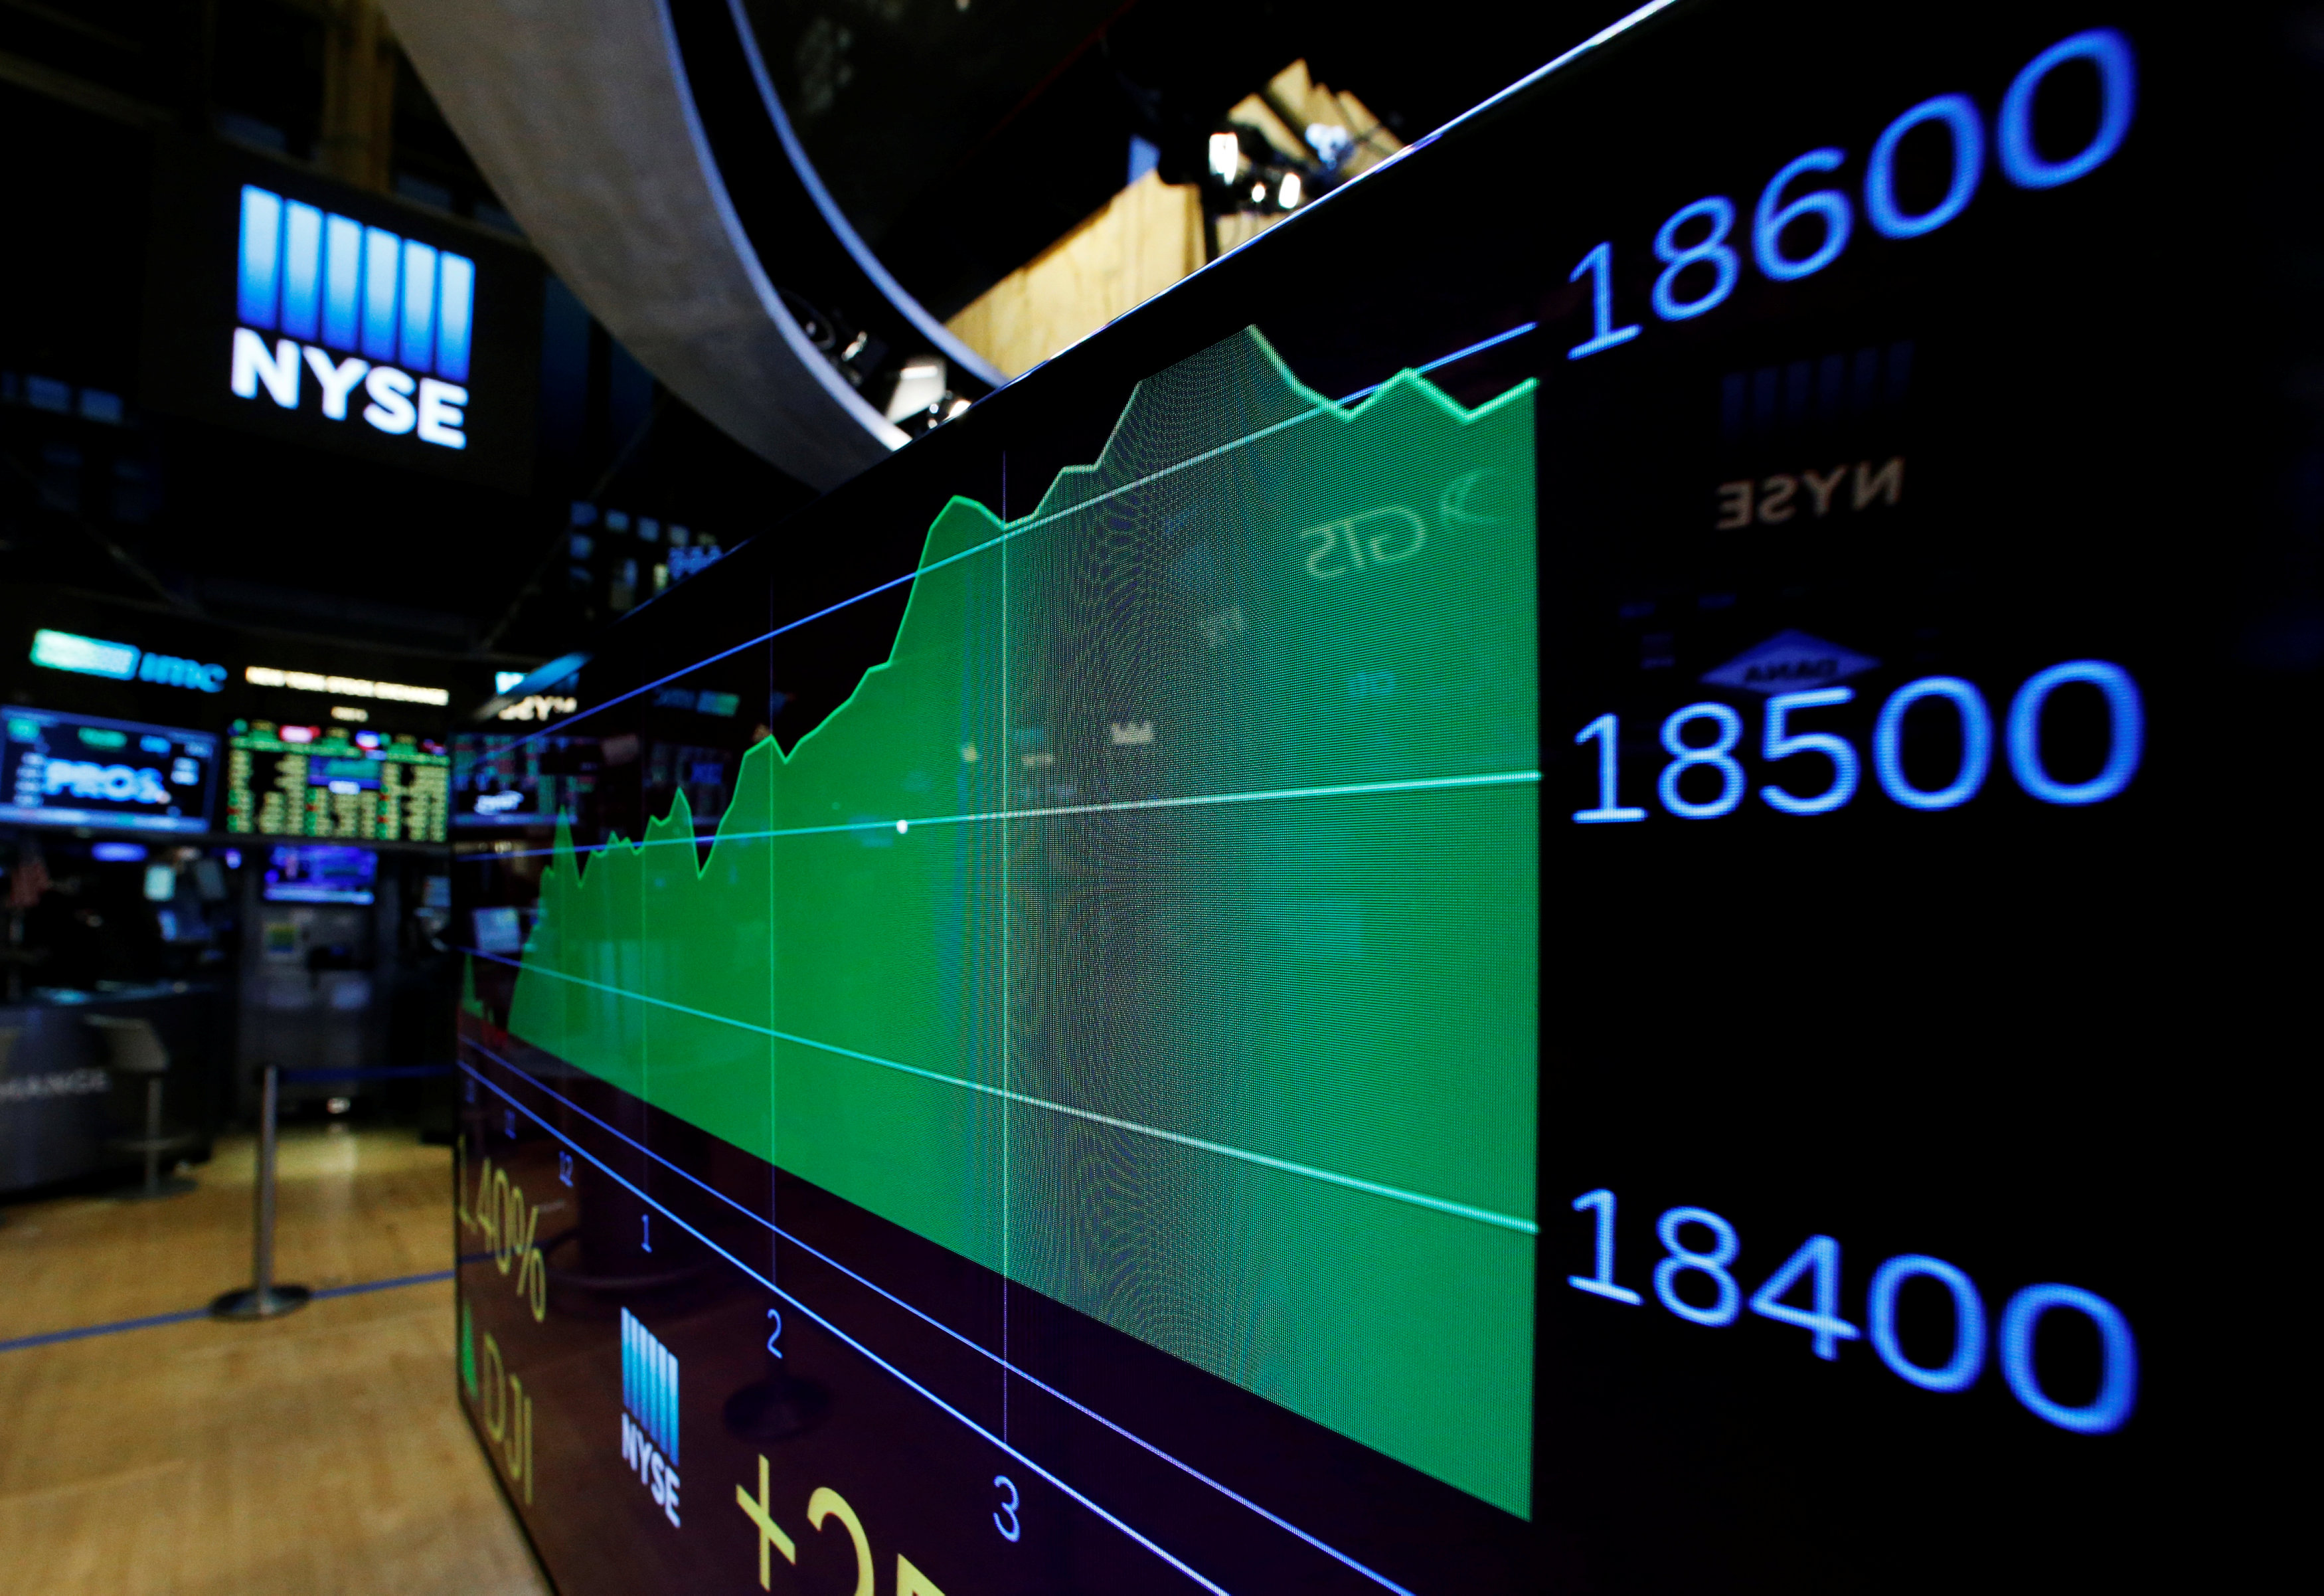 The Dow Jones Industrial Average closed down 28.09 points, or 0.1 per cent, at 28,335.57, the S&P 500 settled up 11.90 points, or 0.3 per cent, at 3,465.39. The Nasdaq Composite closed up 42.28 points, or 0.4 per cent, at 11,548.28. — Reuters pic